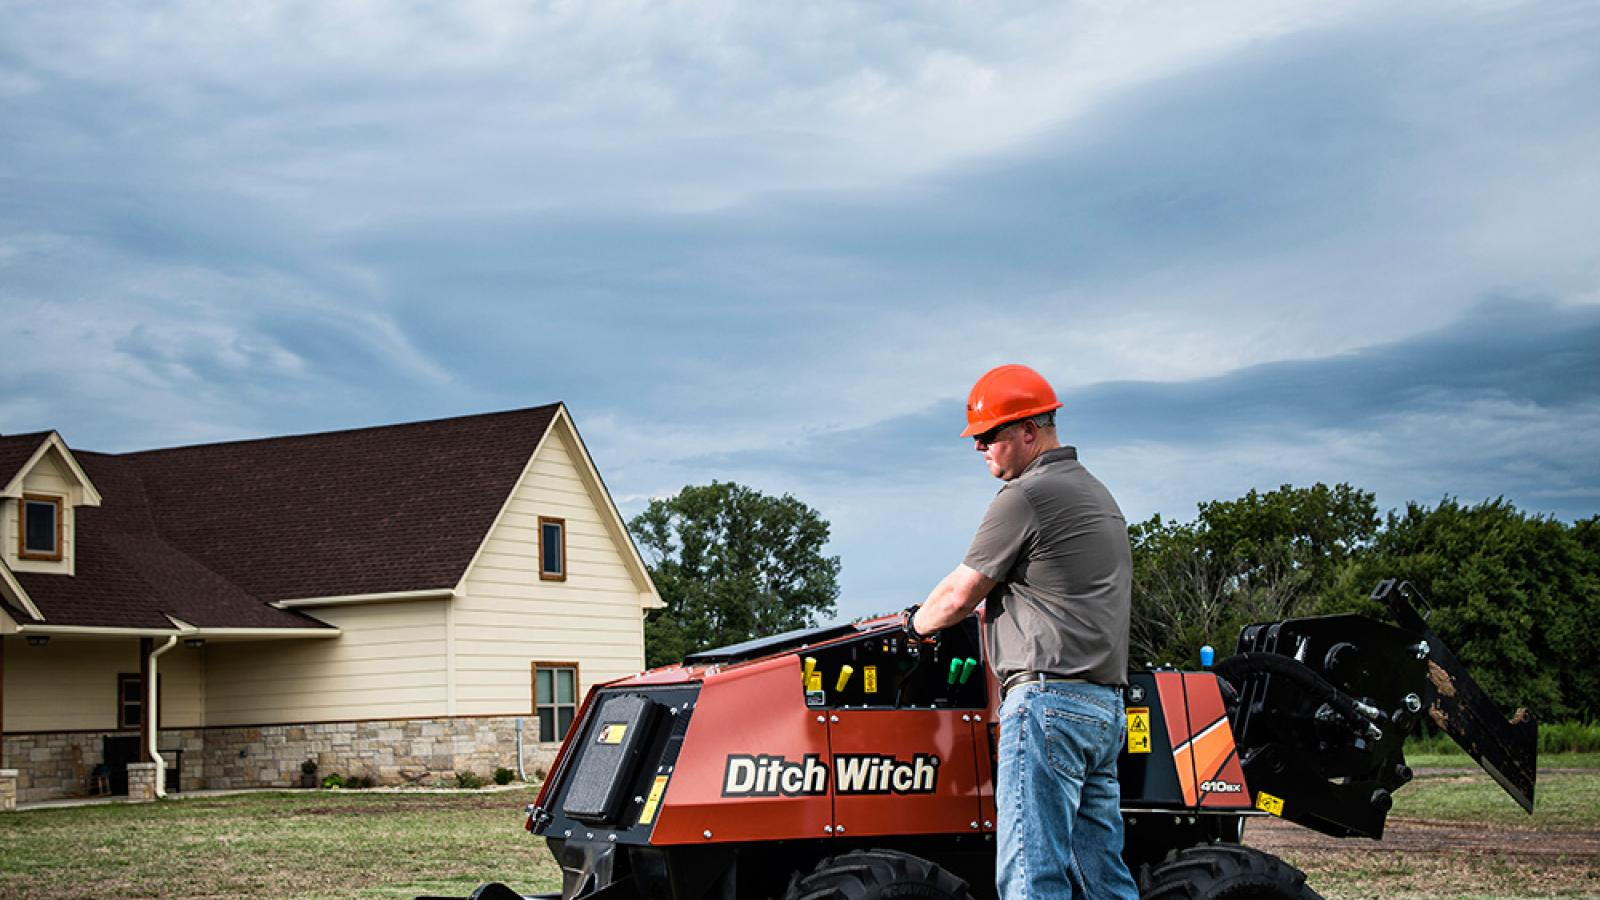 Ditch Witch 410SX Vibratory Plow